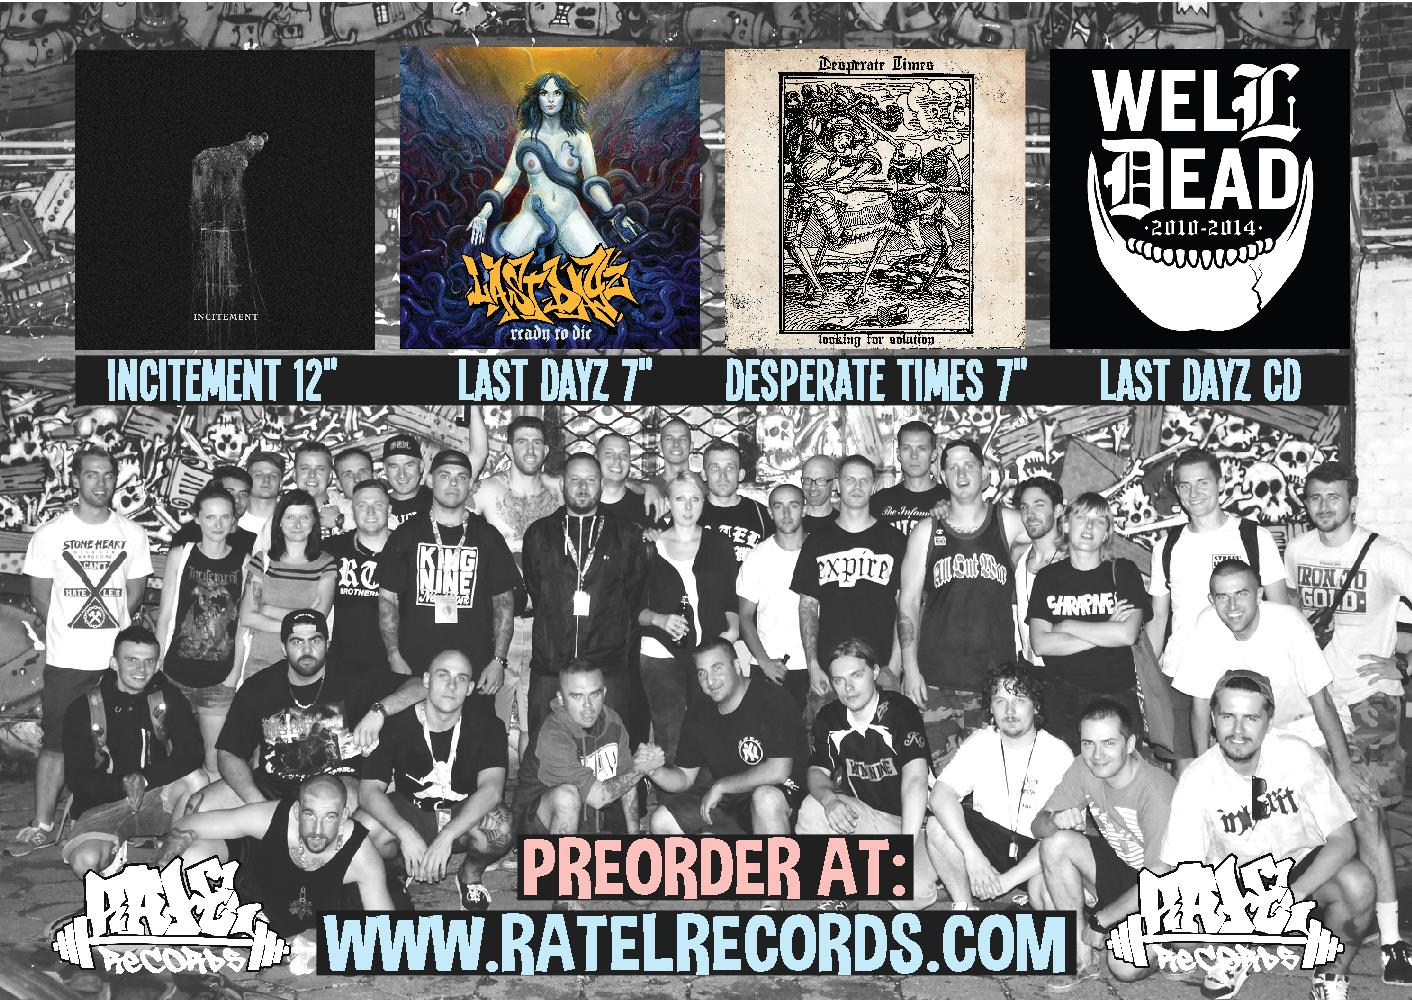 Ratel Records put up 4 new pre-orders